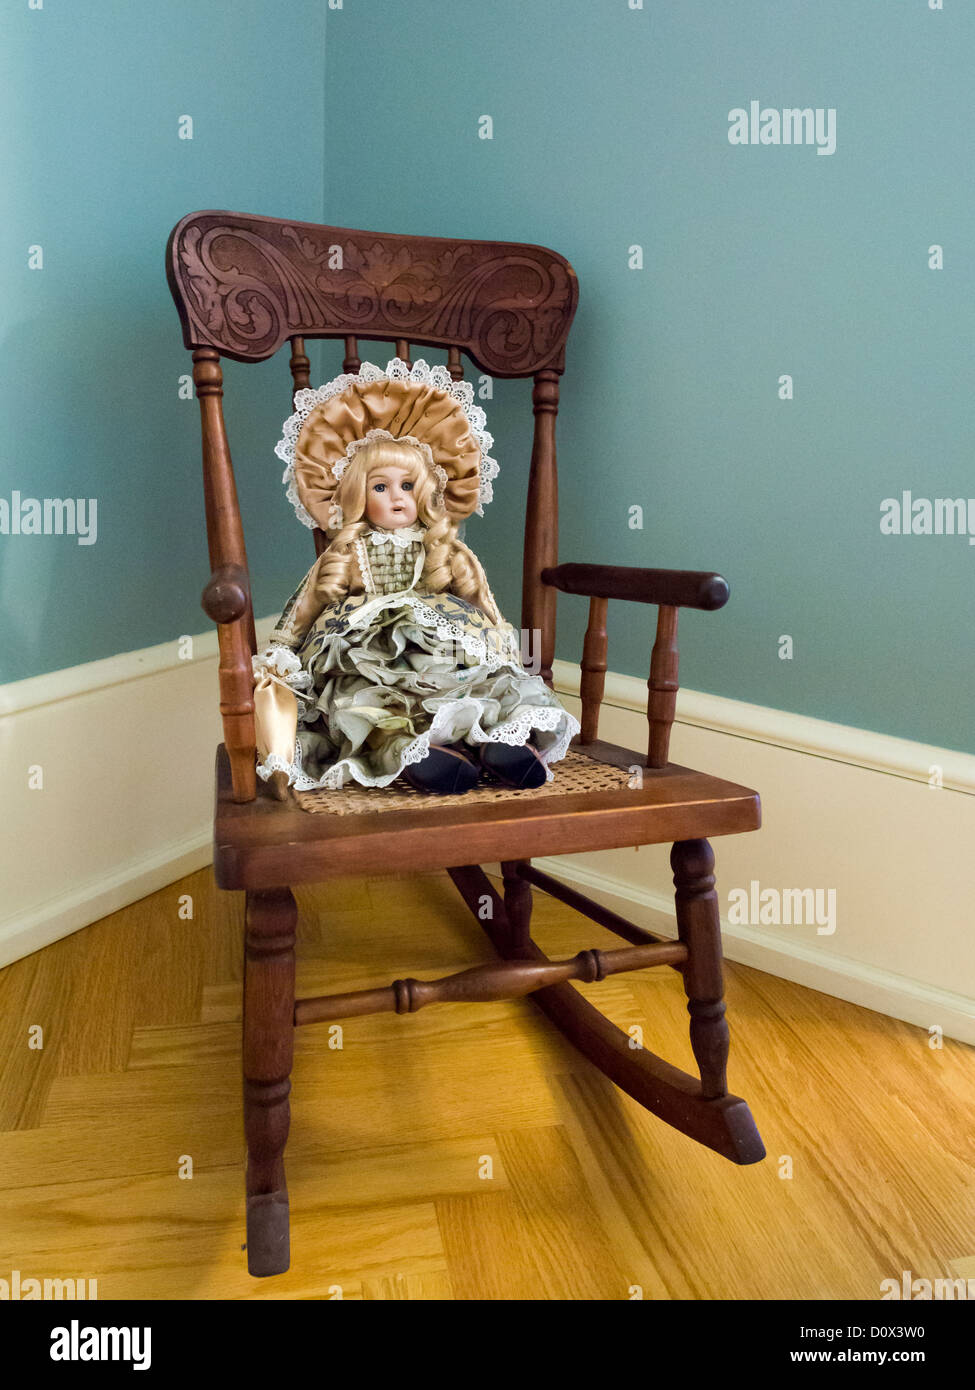 Antique Doll on a Rocking Chair. An old doll seated on an antique rocking  chair decorates Boldt's daughter's room - Antique Doll On A Rocking Chair. An Old Doll Seated On An Antique